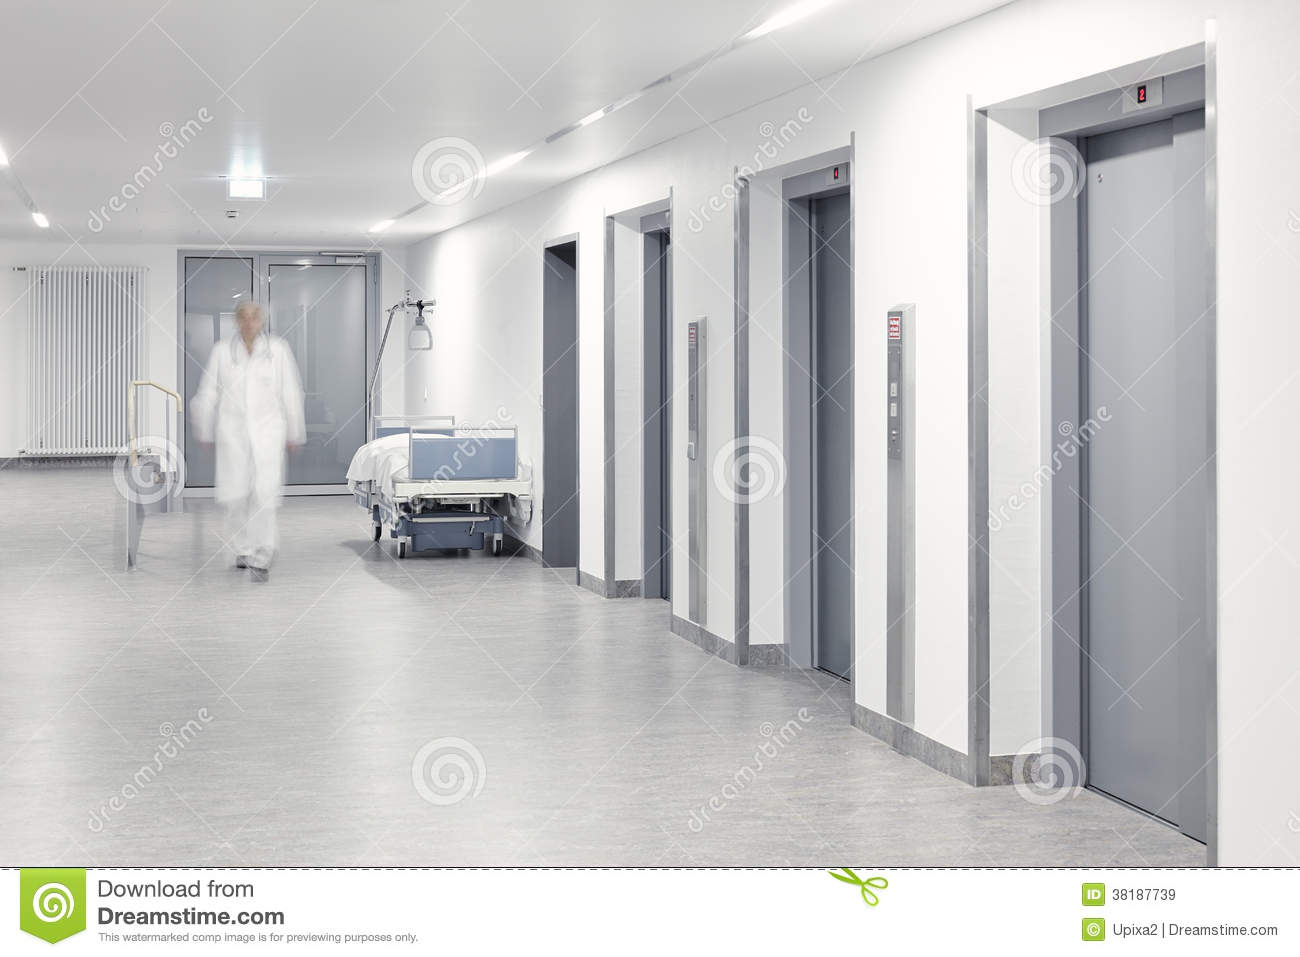 hospital elevator bed ward doctor royalty free stock